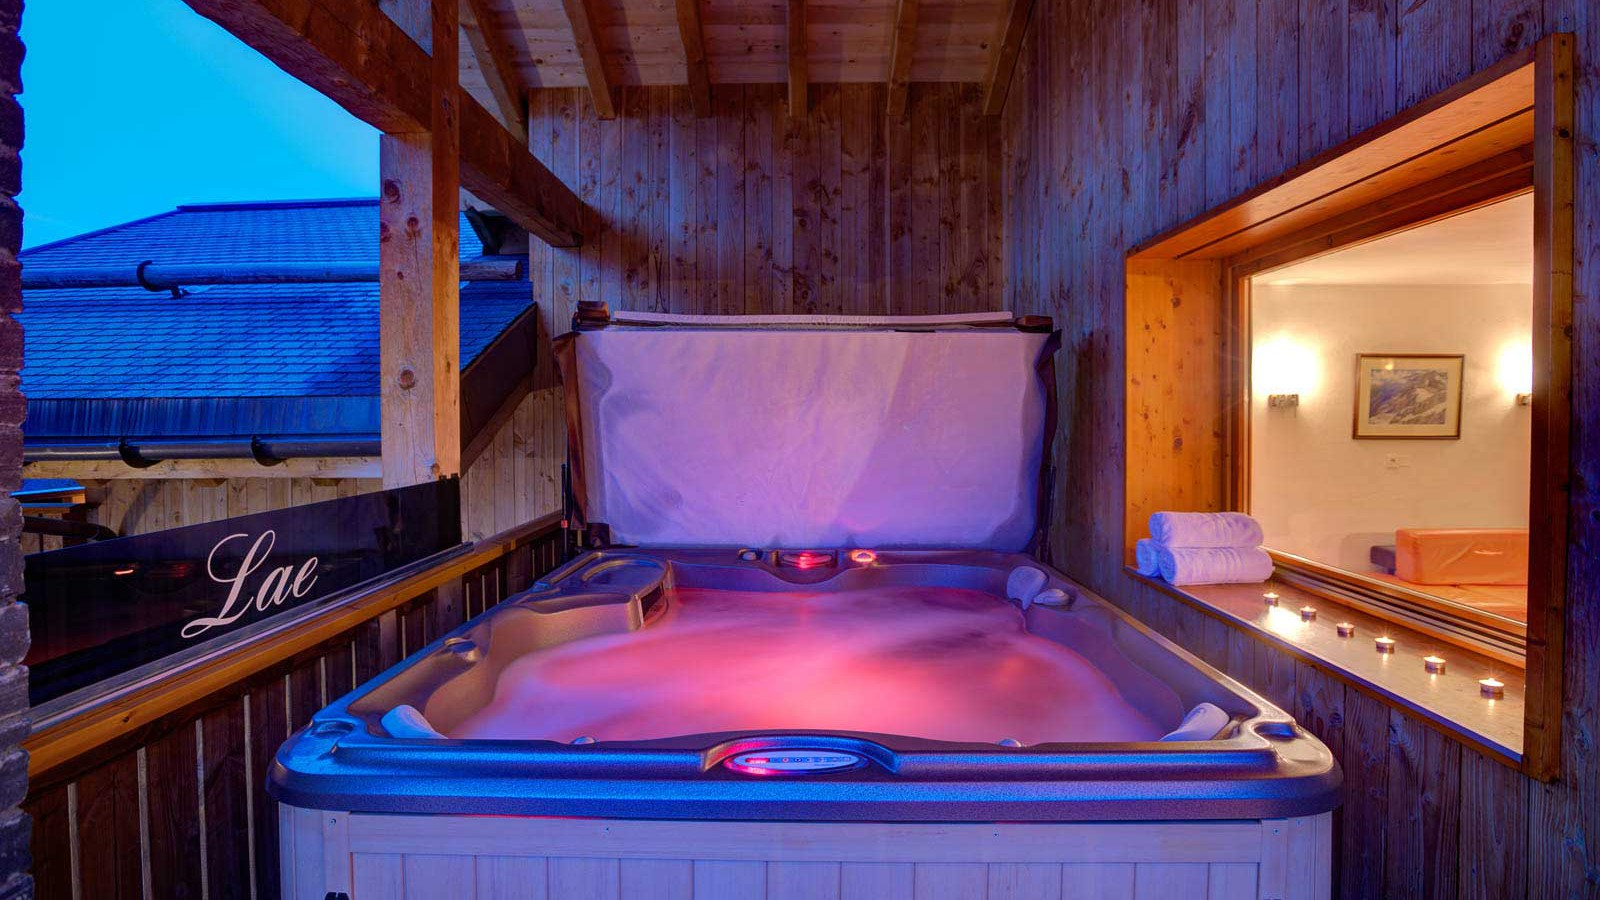 Chalet Laetitia, Meribel - Hot Tub - Twilight